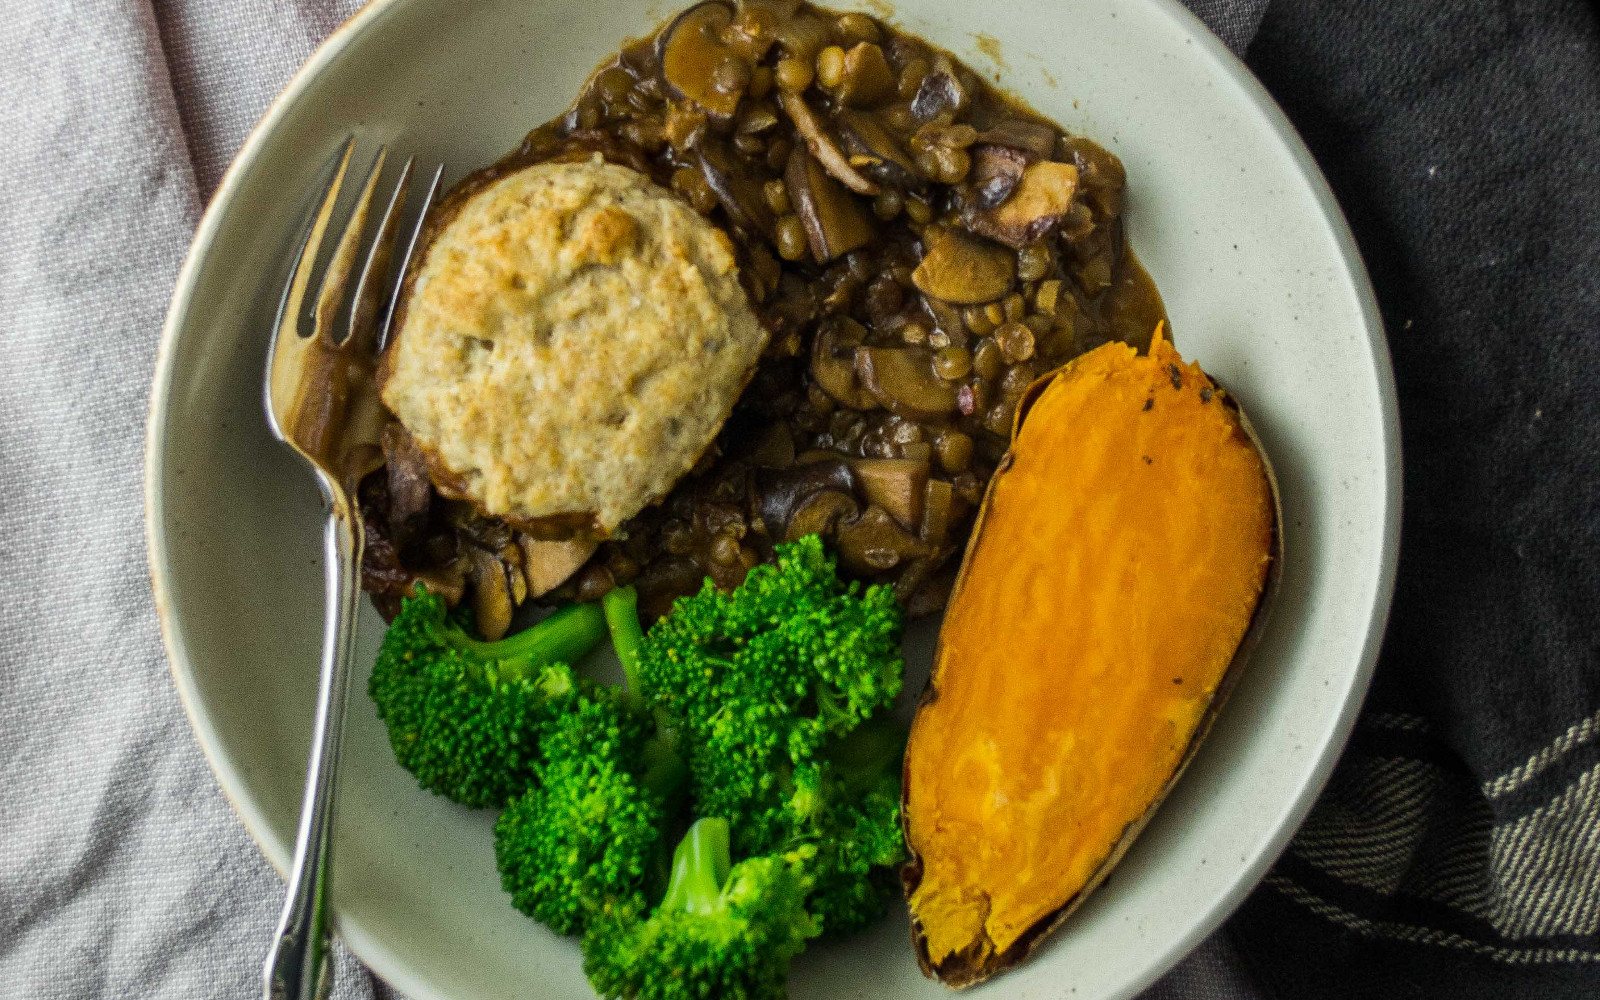 Deconstructed Mushroom Lentil Pot Pie With Biscuits